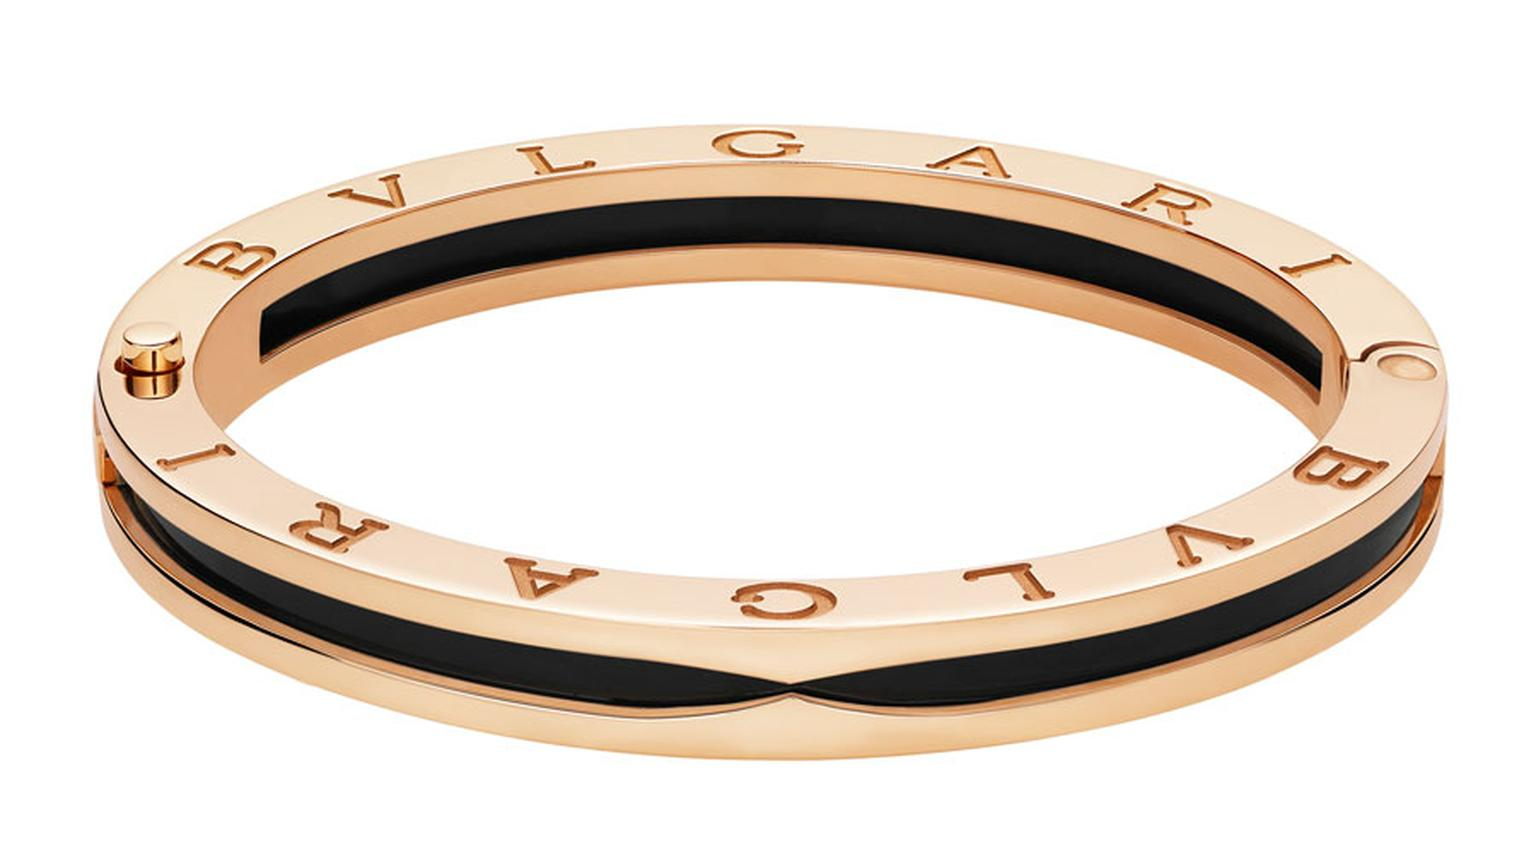 Bulgari B.zero1 pink gold and black ceramic bangle bracelet _ 4.150 GBP.jpg